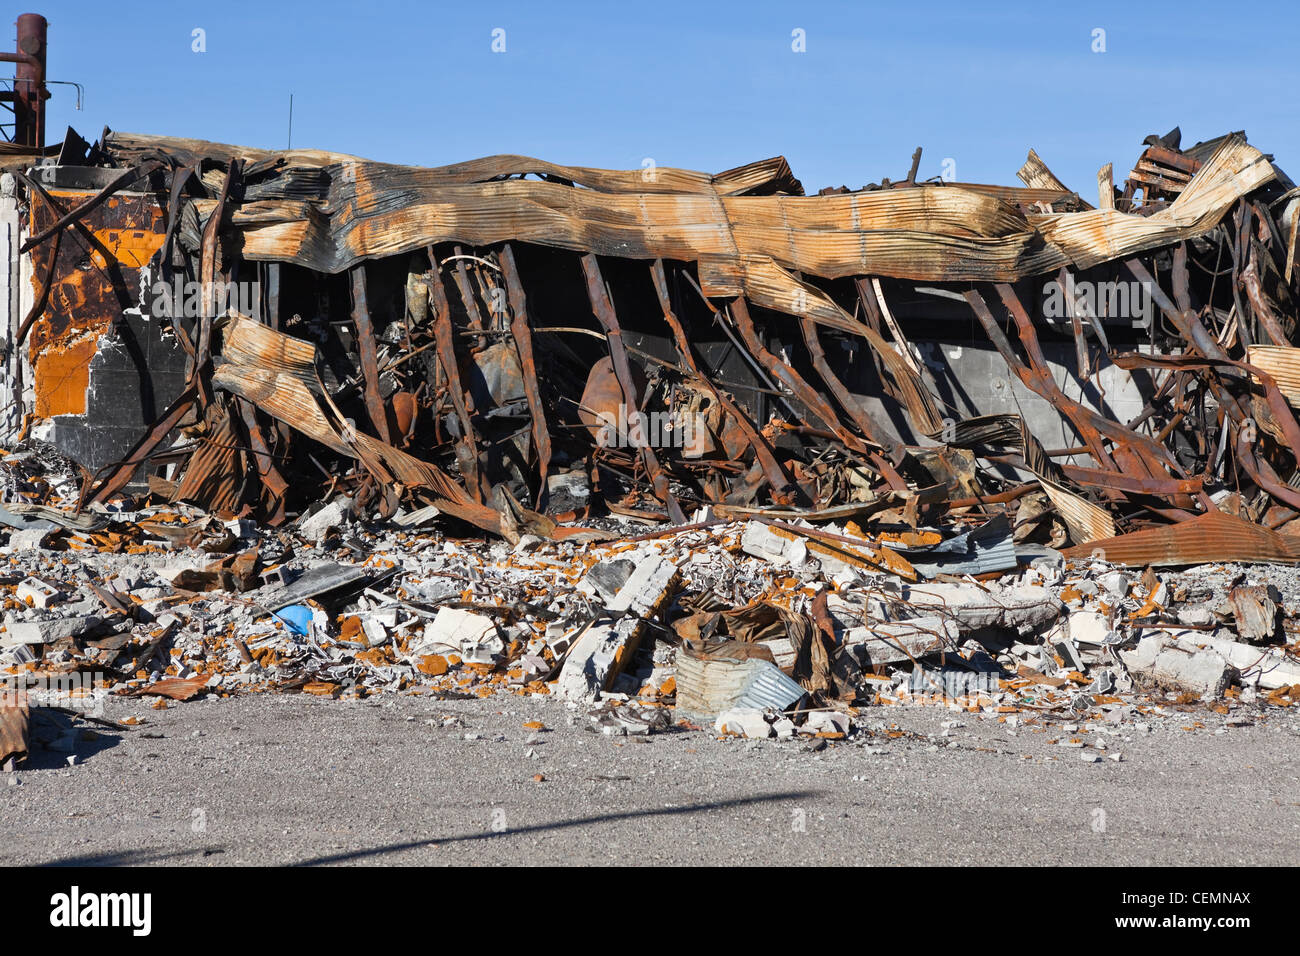 Melted ruin of a fire damaged structure. - Stock Image